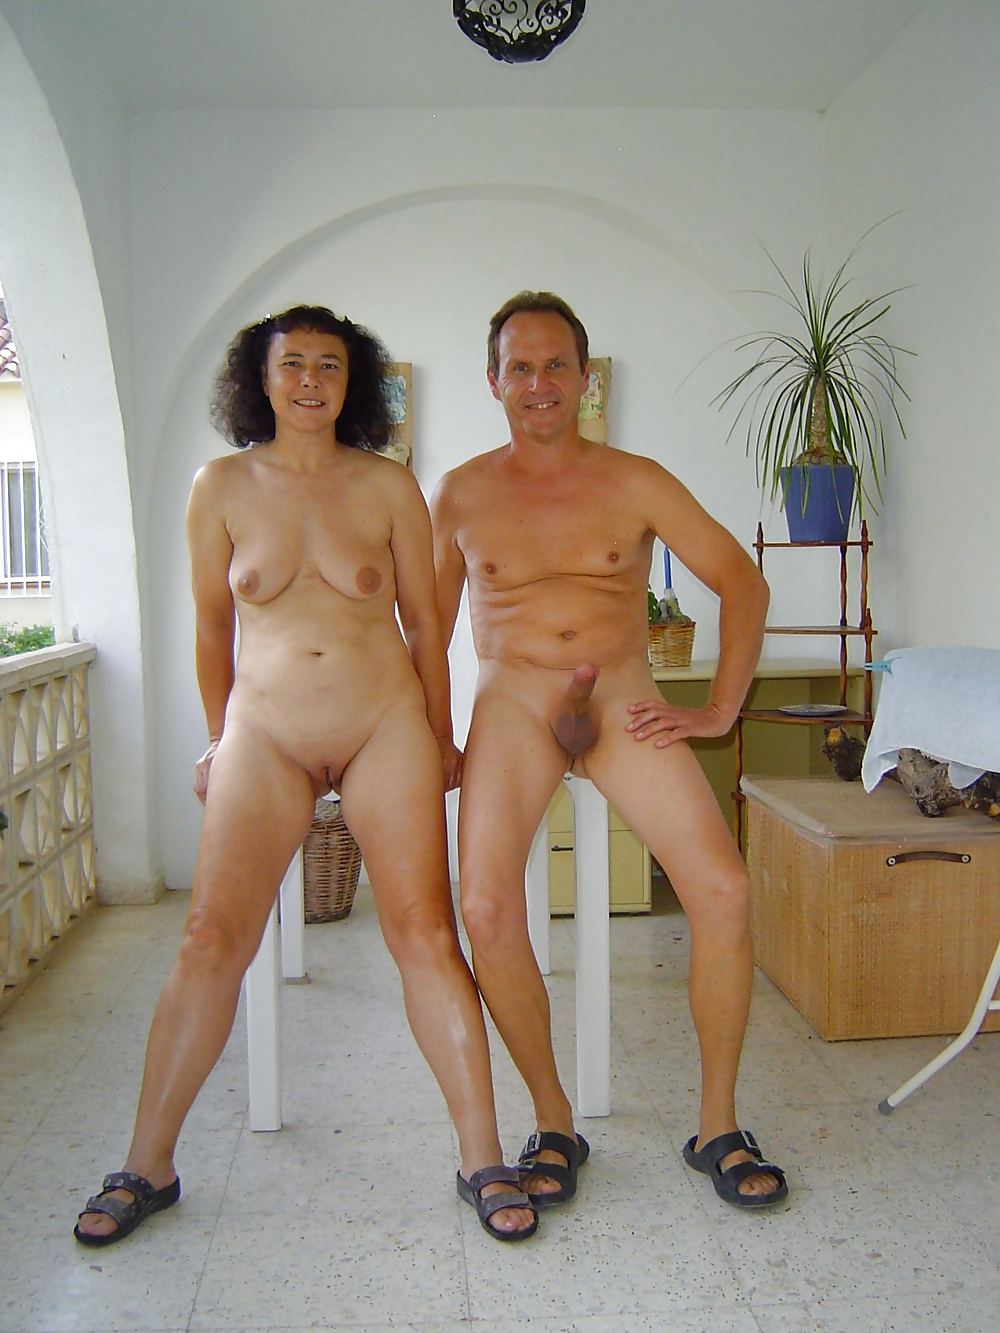 Young naked couples naked sex at hotel, african pussy nude girls